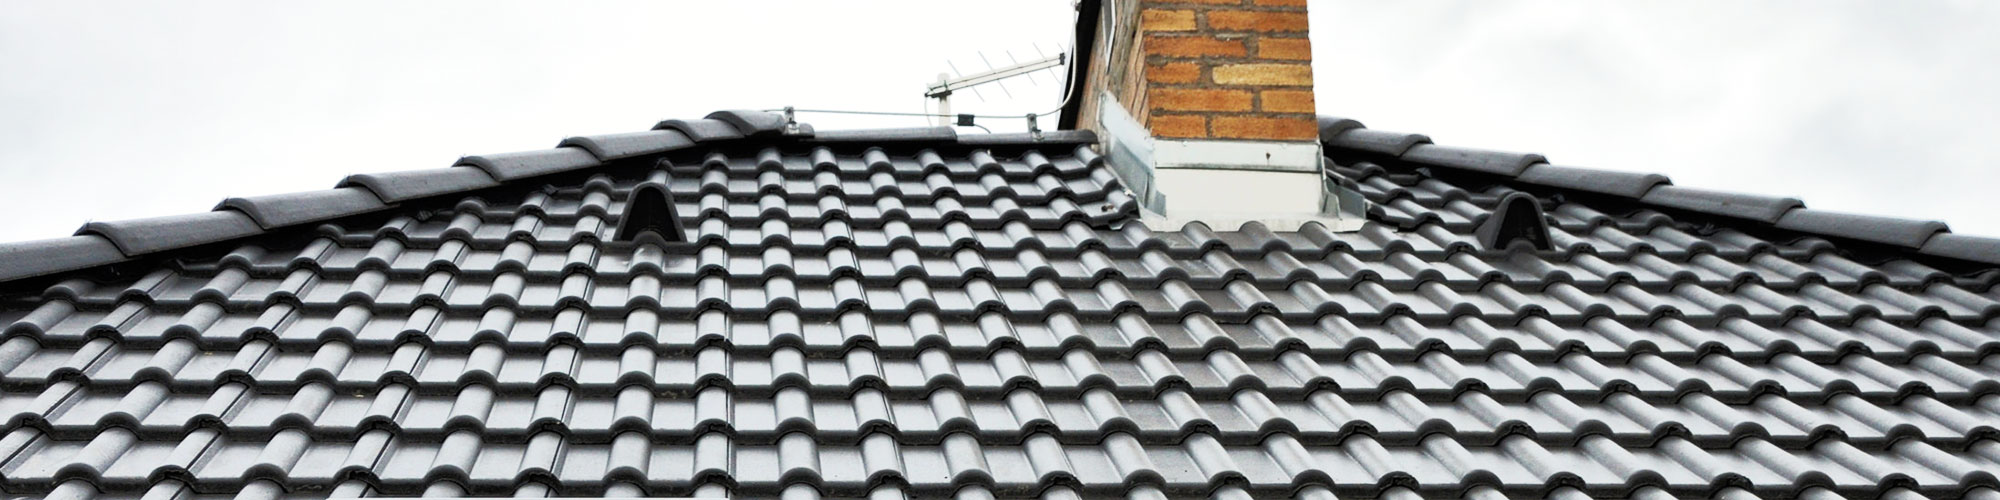 Conrete Tiled Roof